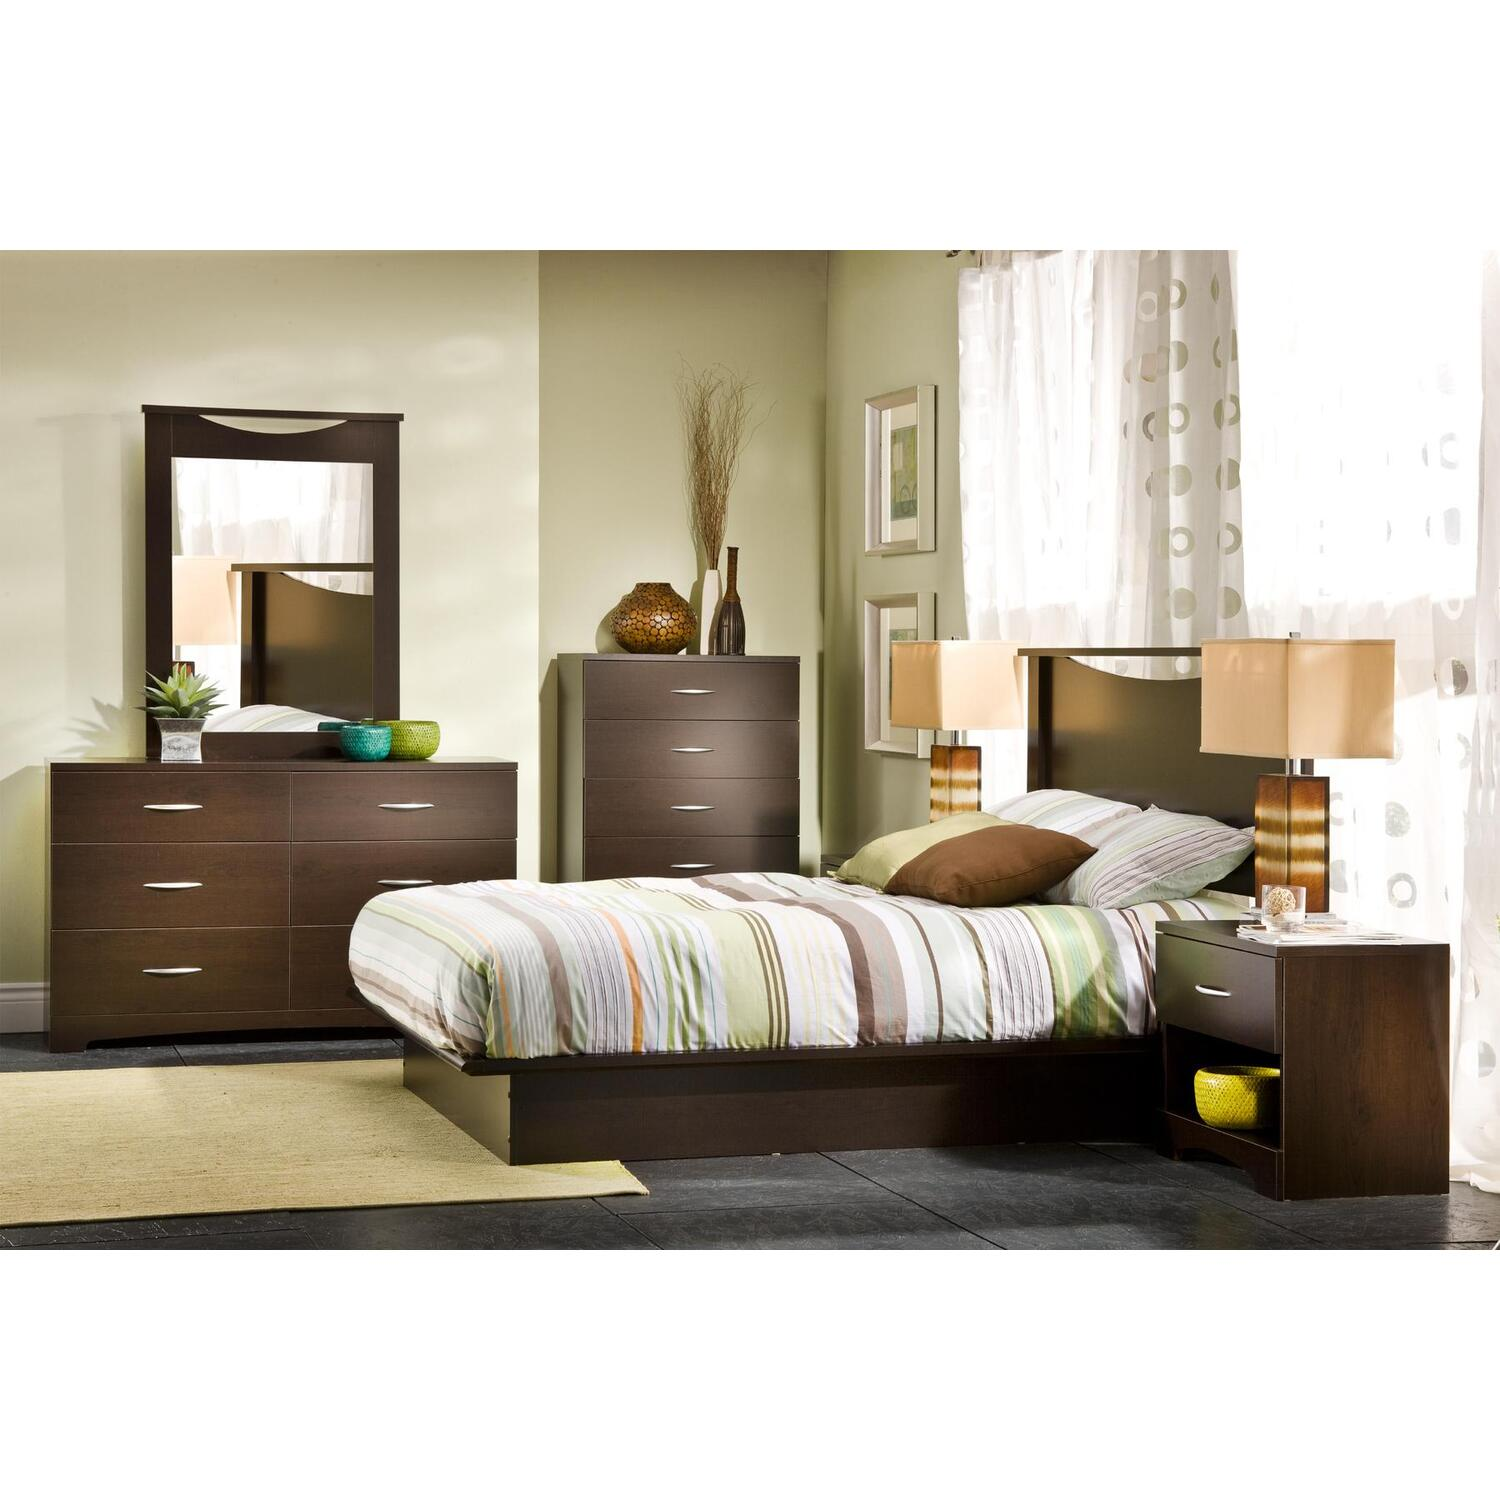 7 piece bedroom set - interior design